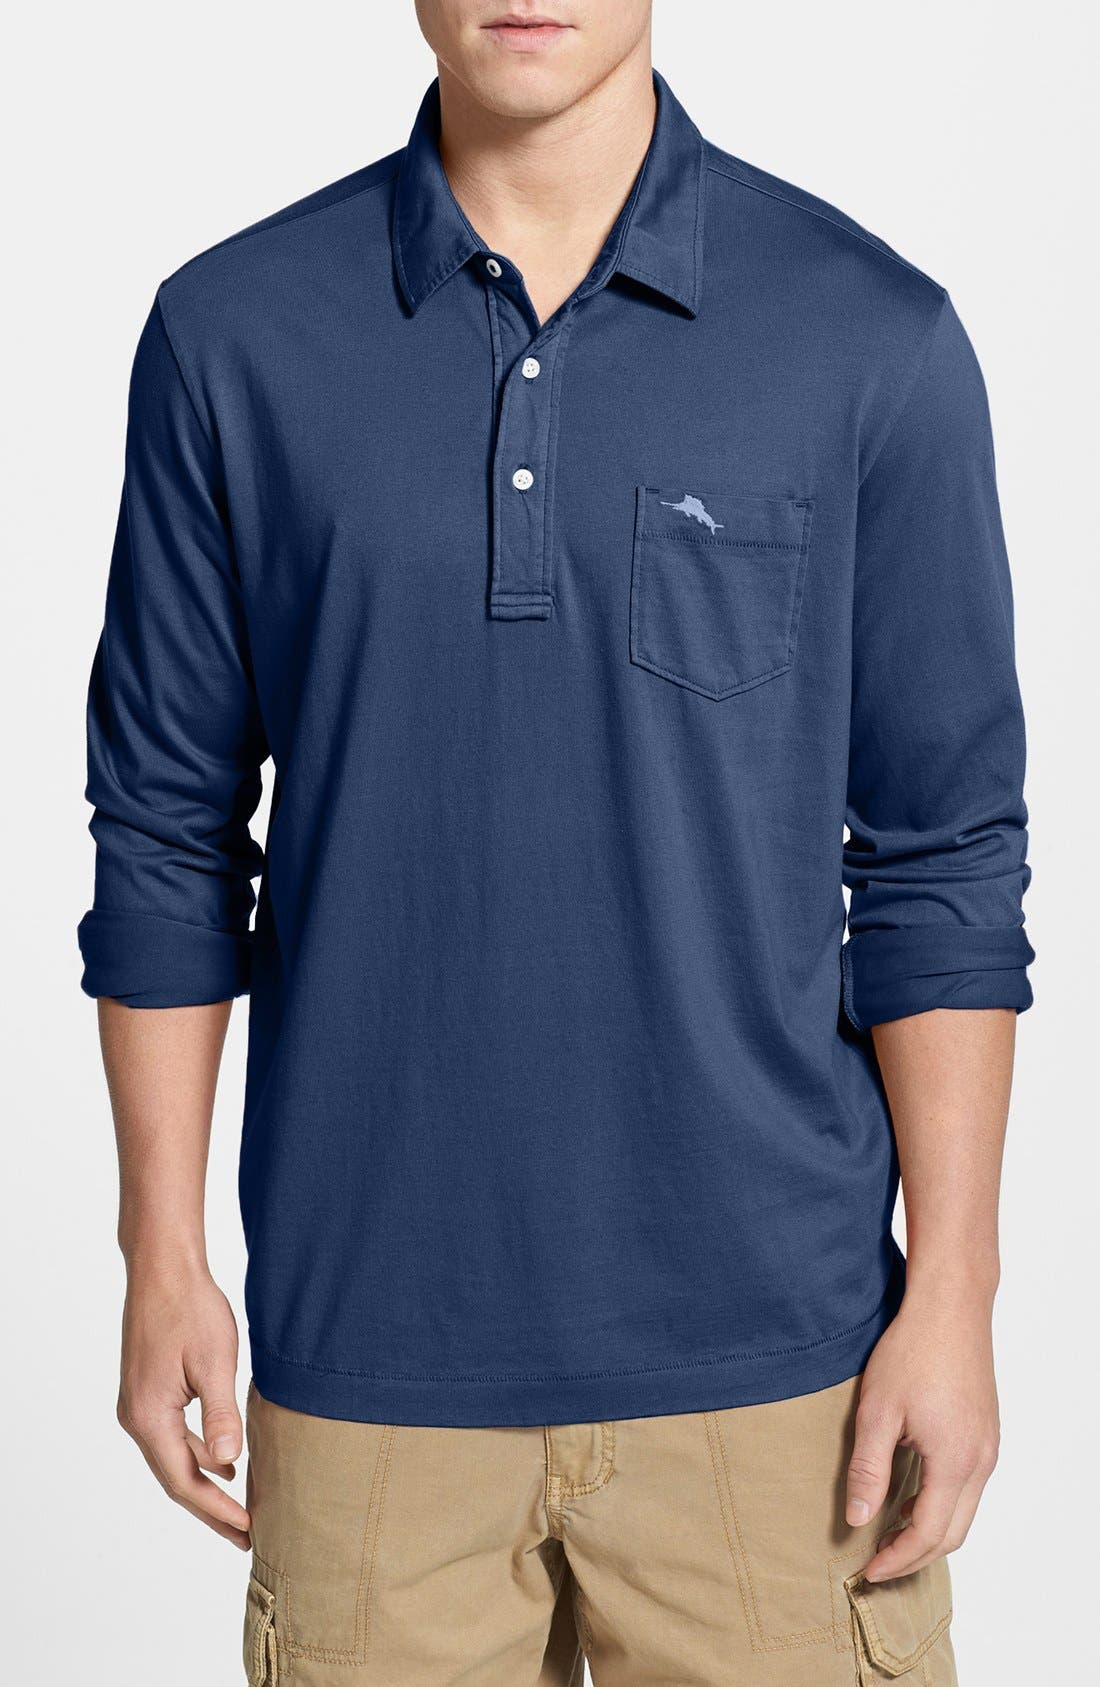 Alternate Image 1 Selected - Tommy Bahama 'Bali Shore' Long Sleeve Polo